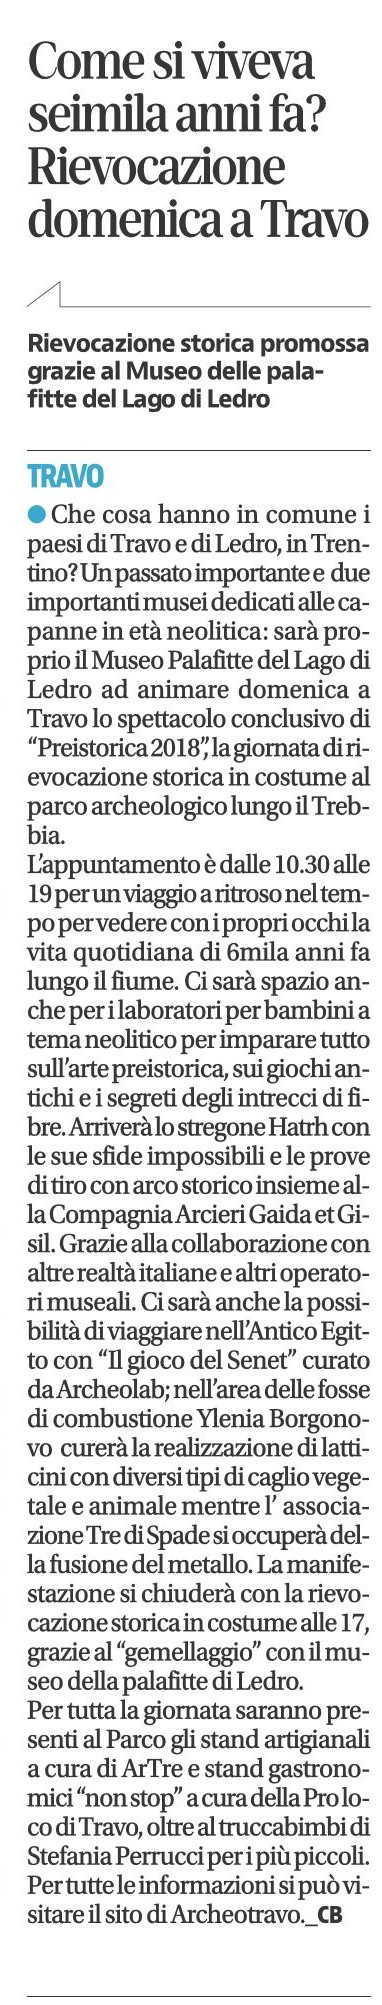 quotidiano Libertà